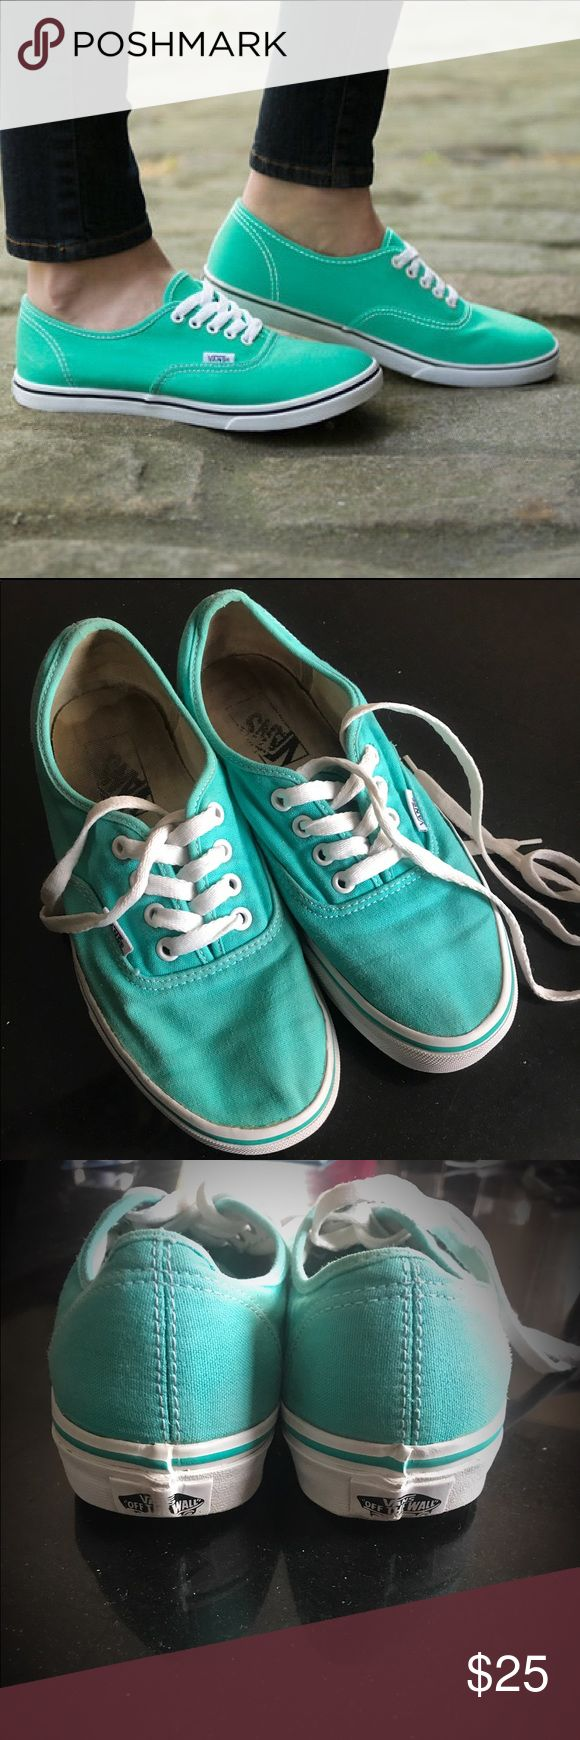 Mint Green Authentic Lo Pro Vans Mint green authentic lo pro vans. These are in decent shape, no stains on the exterior, bright in color and white edging no yellowing. Outside sole of the shoe shows very little evidence of wear, all tread in tact like new. Insole shows sign of wear, but no one sees that part anyway. Great shoe, make an offer! Vans Shoes